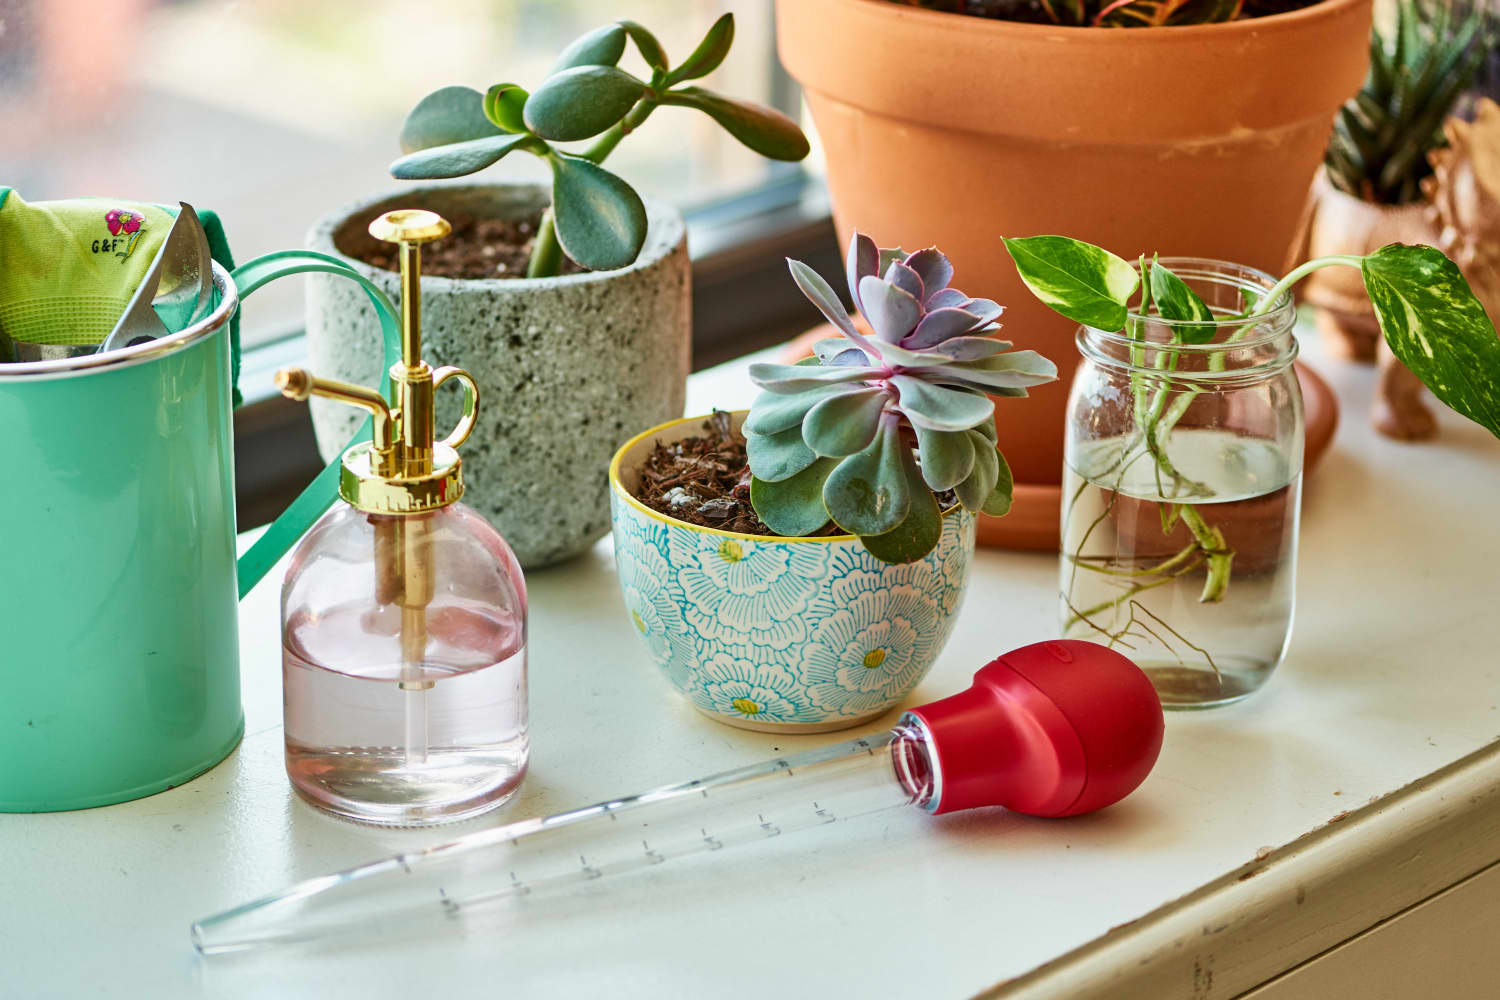 Why You Should Keep a $2 Turkey Baster in Your Plant Care Kit